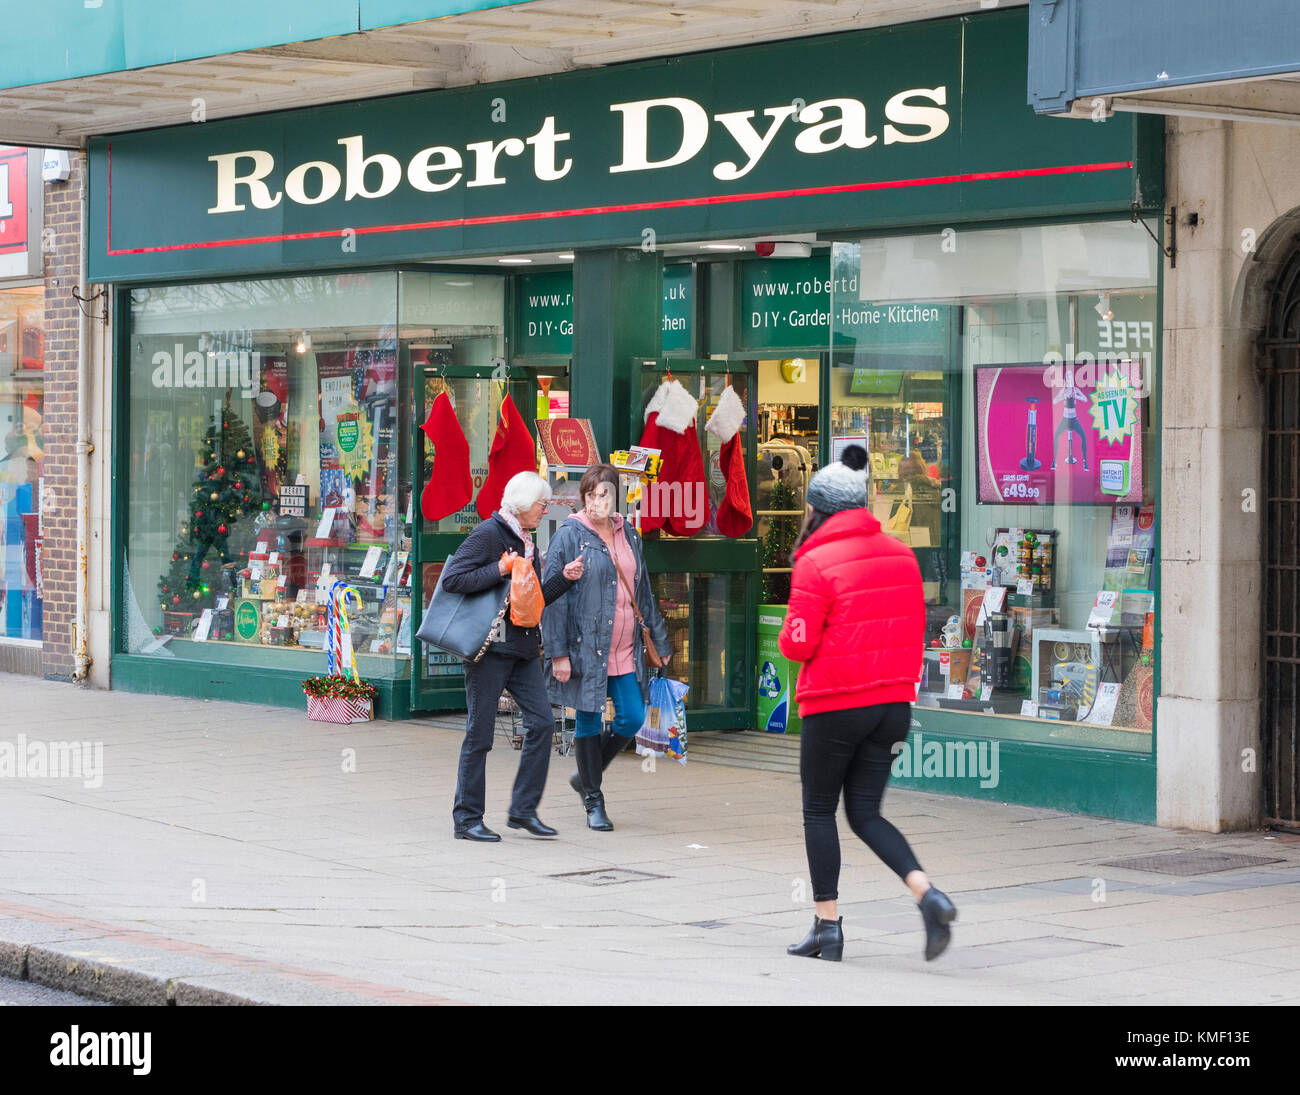 Robert Dyas shop face au Royaume-Uni. Magasin de vente au détail. Banque D'Images